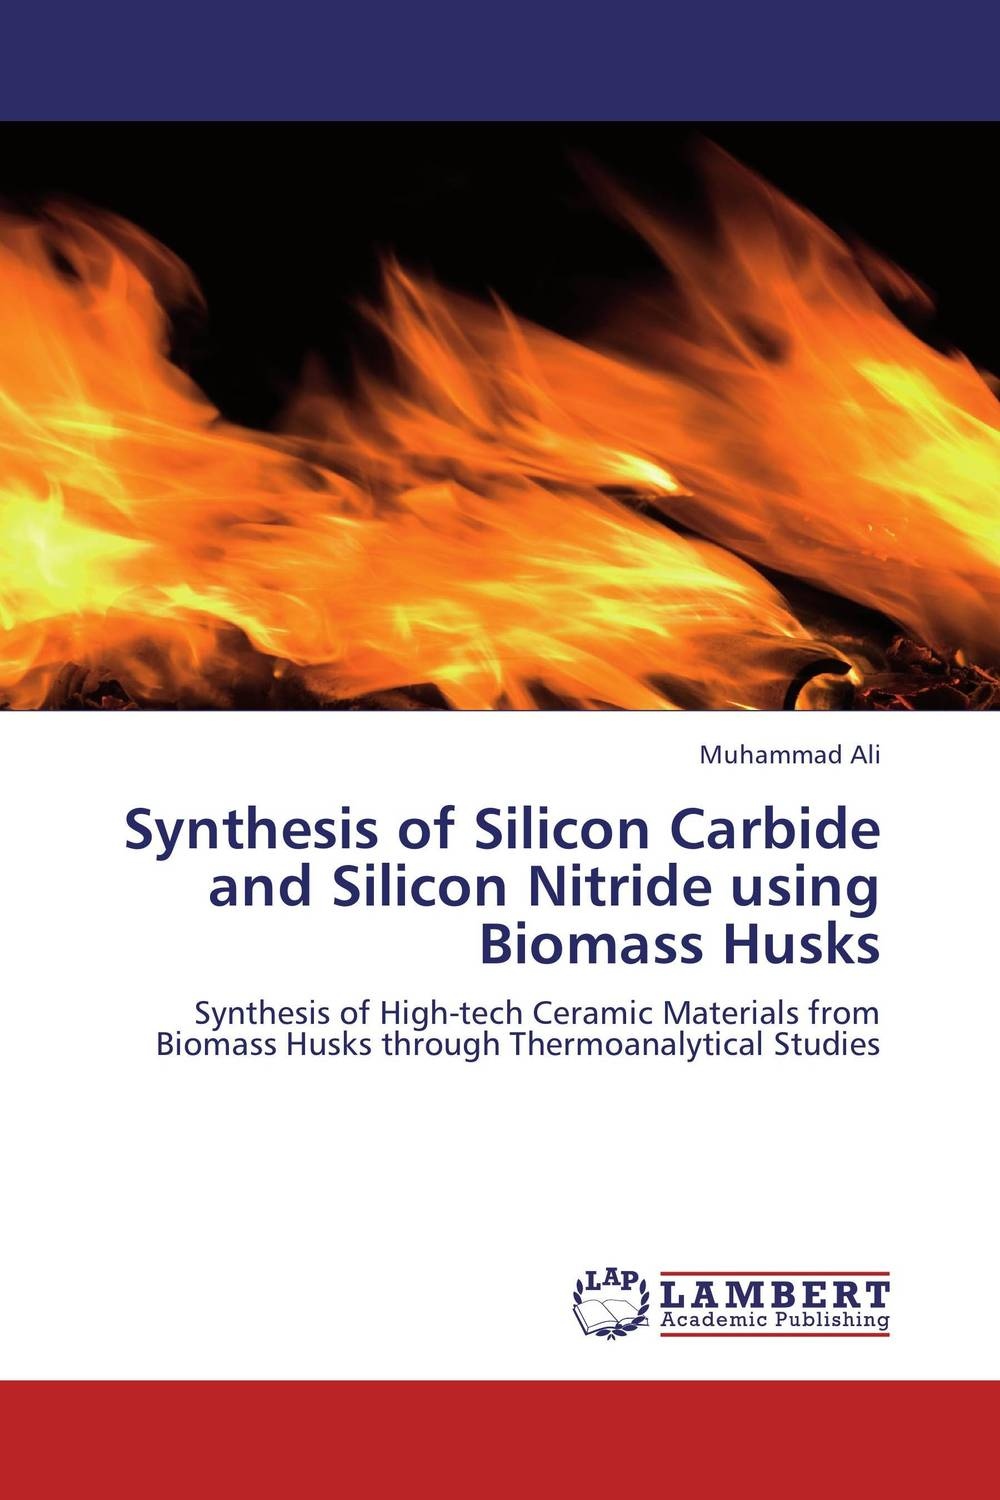 Synthesis of Silicon Carbide and Silicon Nitride using Biomass Husks modified pnas synthesis and interaction studies with dna